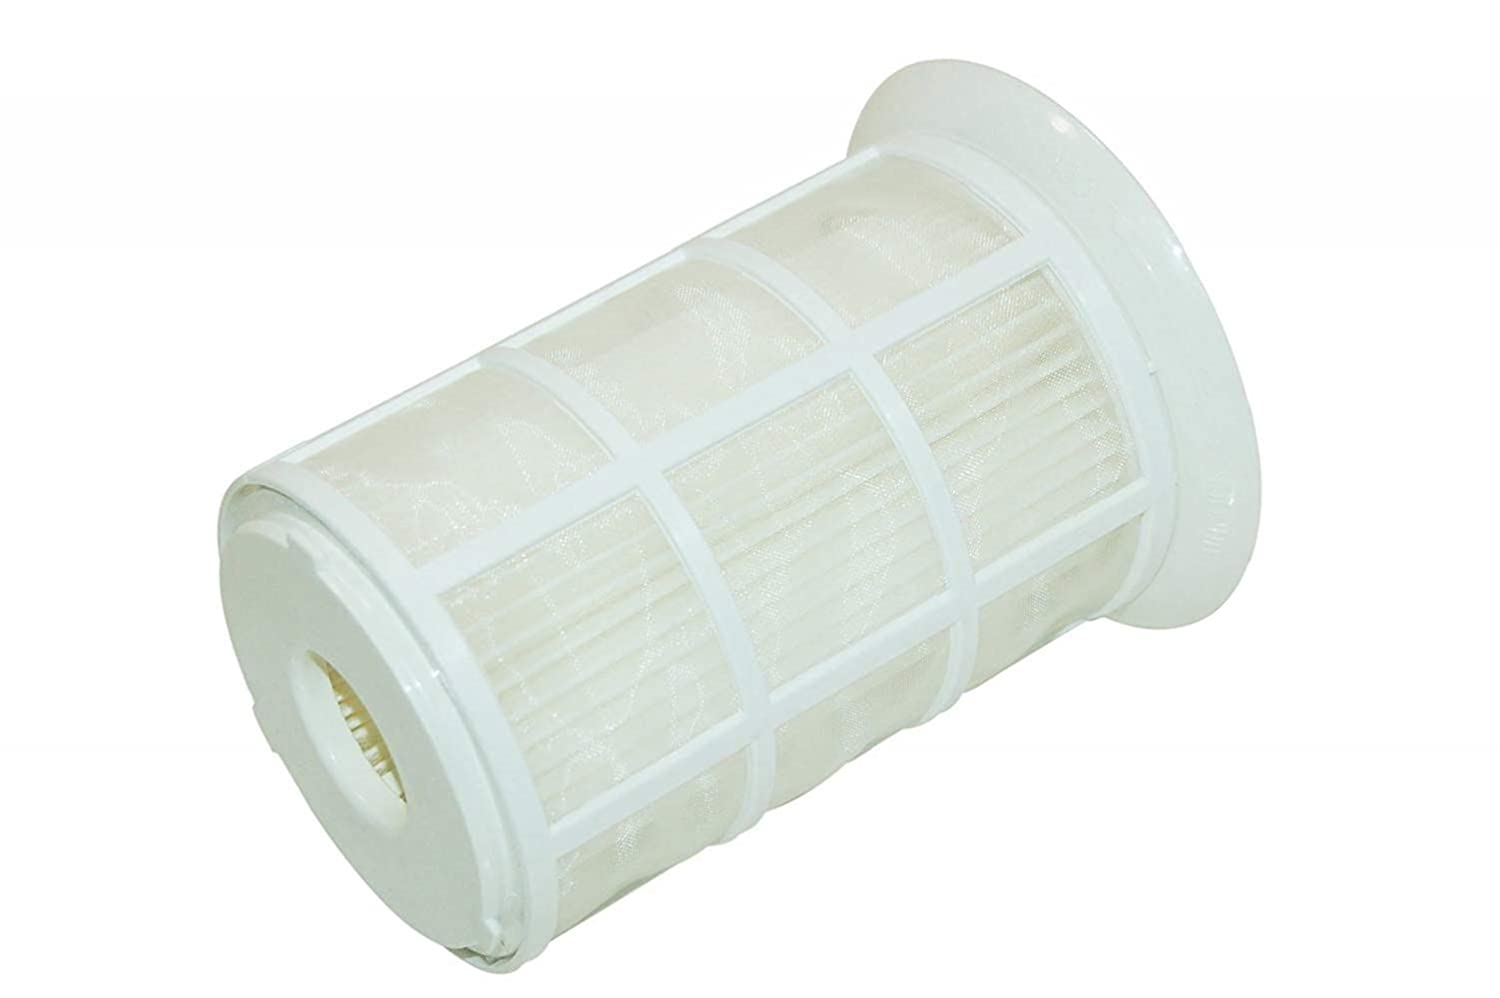 FIND A SPARE Hepa Pre Motor Filter S109 For Hoover SM1800 SM1901 SM2000 Vacuum Cleaners